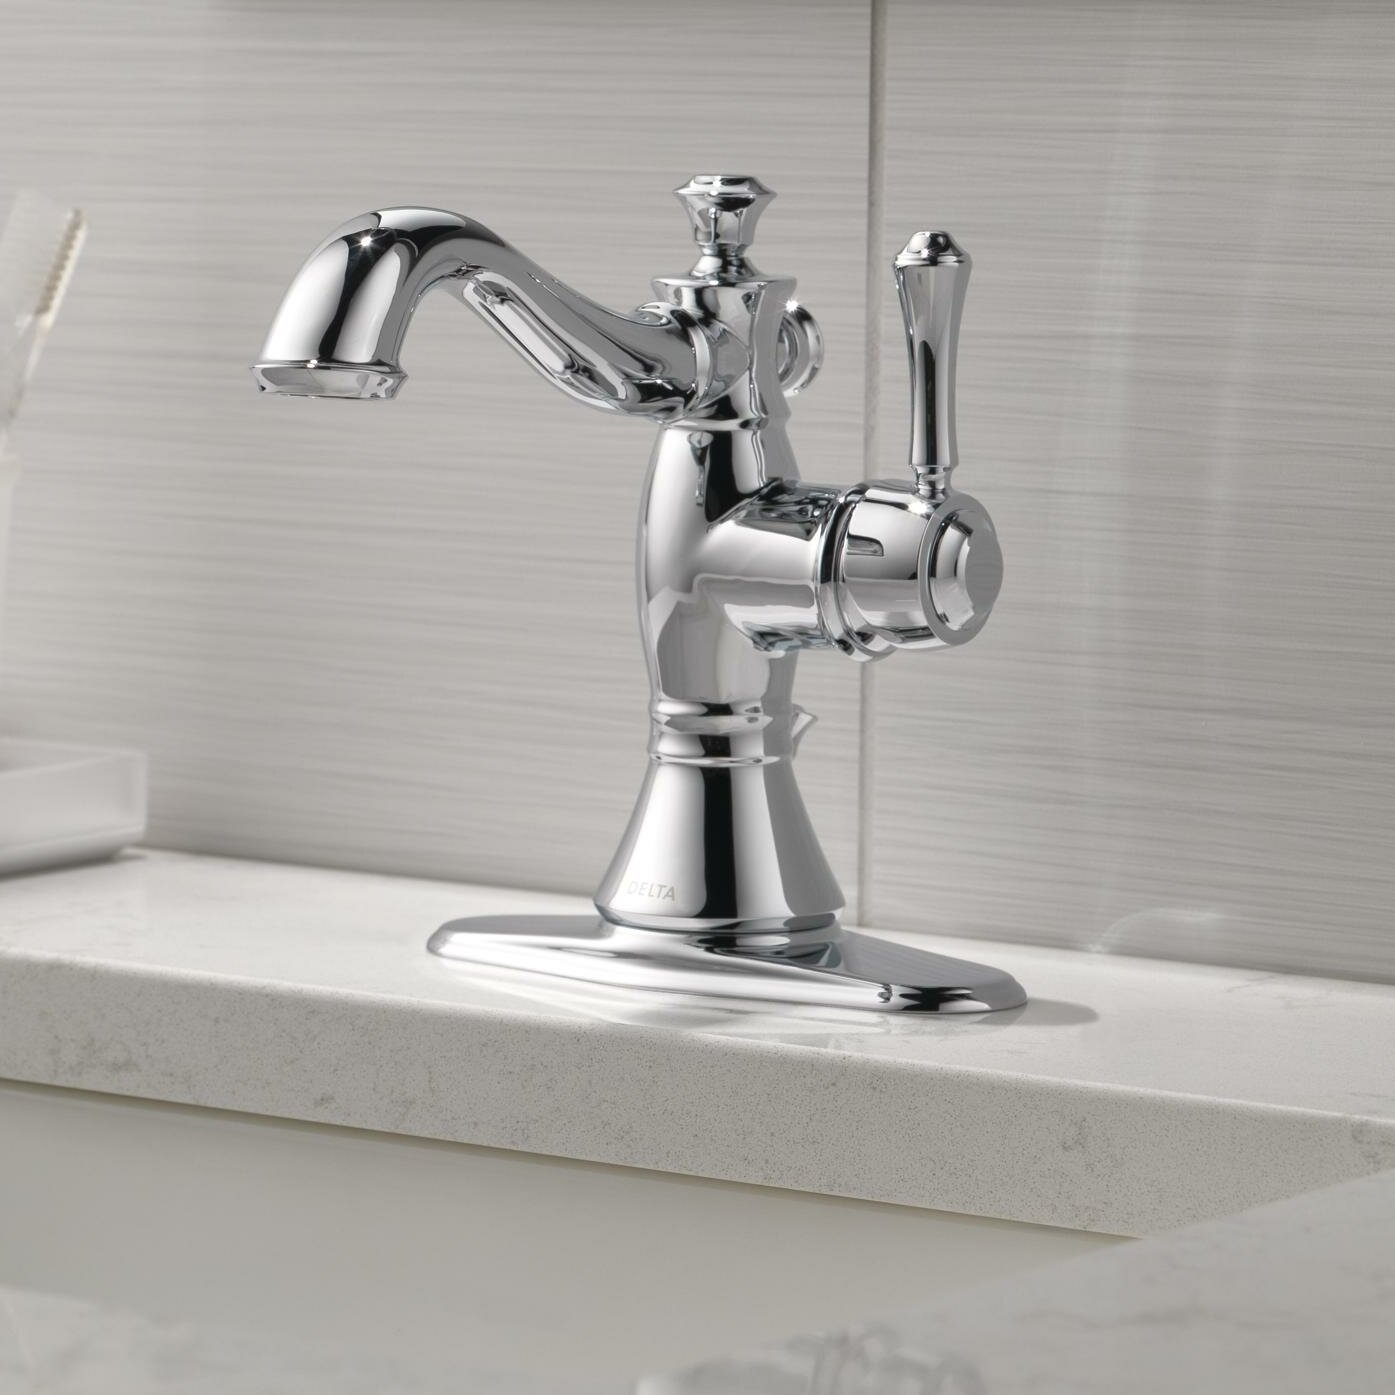 597lf Pnmpu Mpu Czmpu Delta Cidy Single Hole Bathroom Faucet With Drain Embly Reviews Wayfair